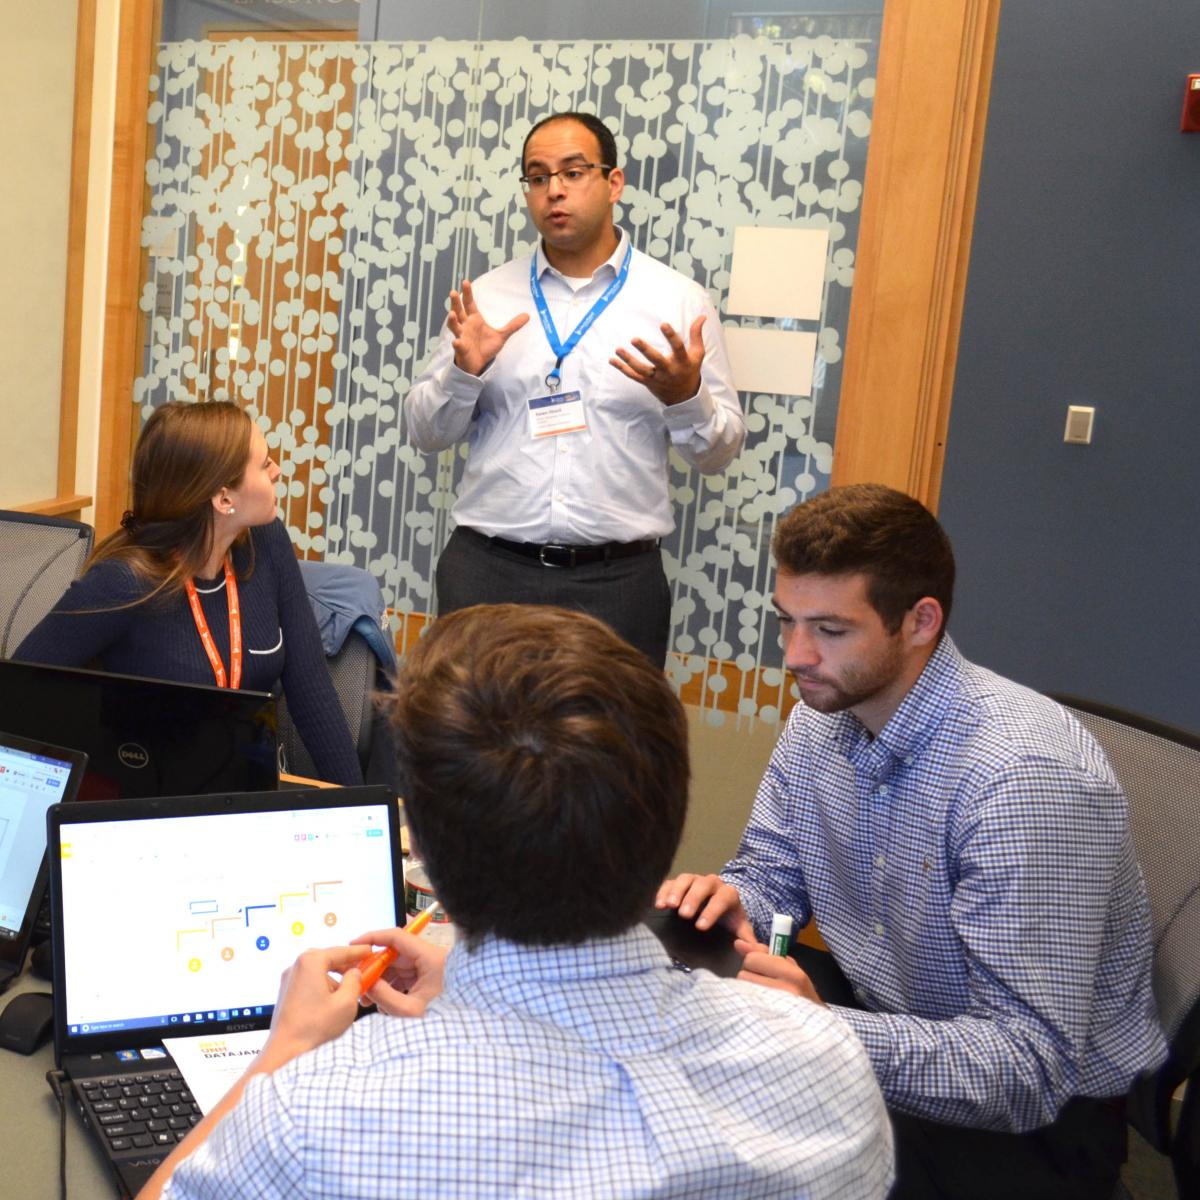 Liberty Mutual employee coaches group of Paul College students in breakout room